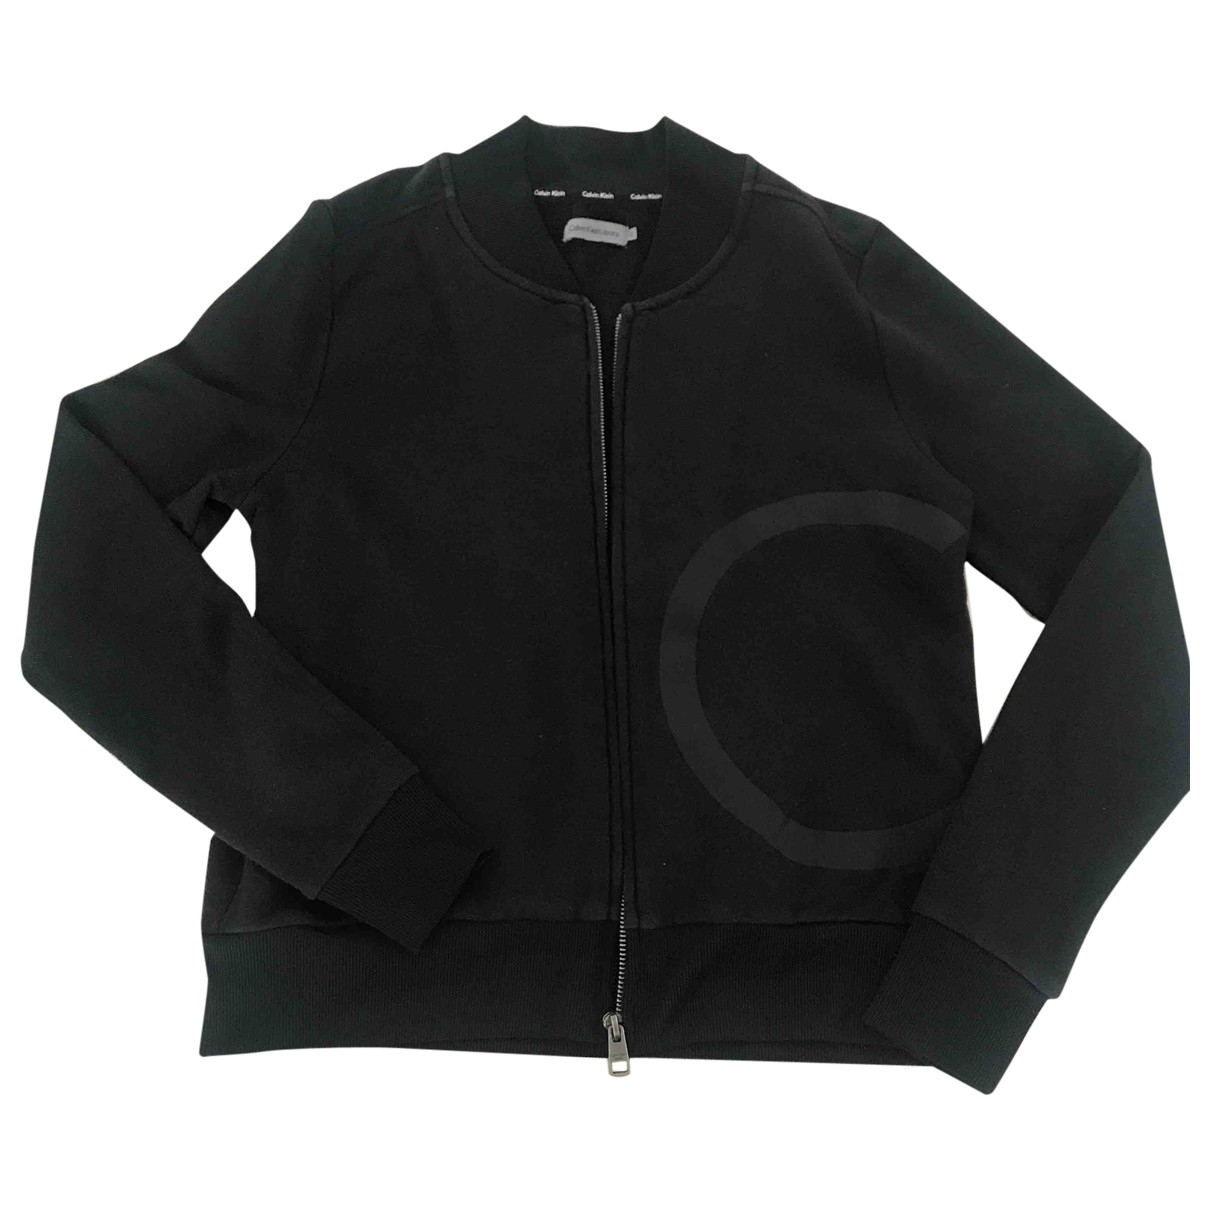 Calvin Klein \N Black Cotton Knitwear for Women S International